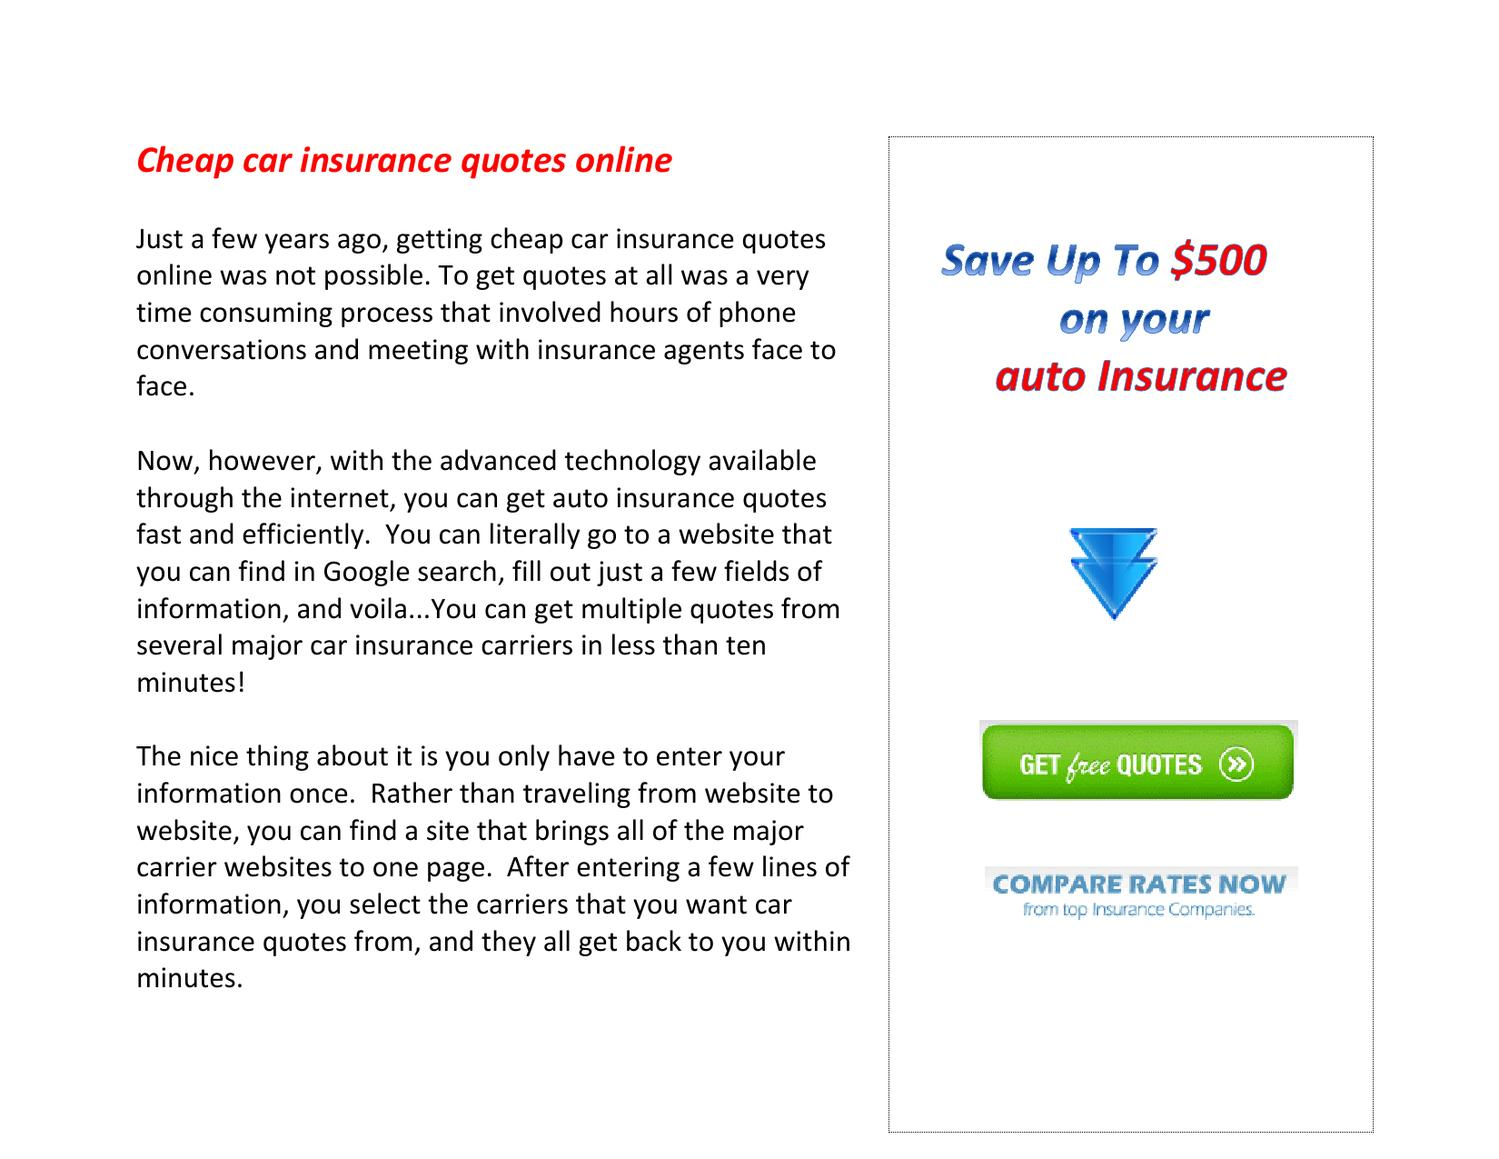 Compare Cheap Car Insurance Deals Comparethemarket. Arizona Aquatic Gardens Mercy Rehab Auburn Ny. Shopify Merchant Account City Sprint Portland. Make A Website Free Online How Home Warranty. Airmaster Air Conditioning Masters School Ct. Vertual Stock Exchange Luxury Villas St Barts. Electronic Signature Email Golf Logo Designs. Variable Universal Life Definition. Senior Living Vancouver Wa Tax Lawyer Dallas